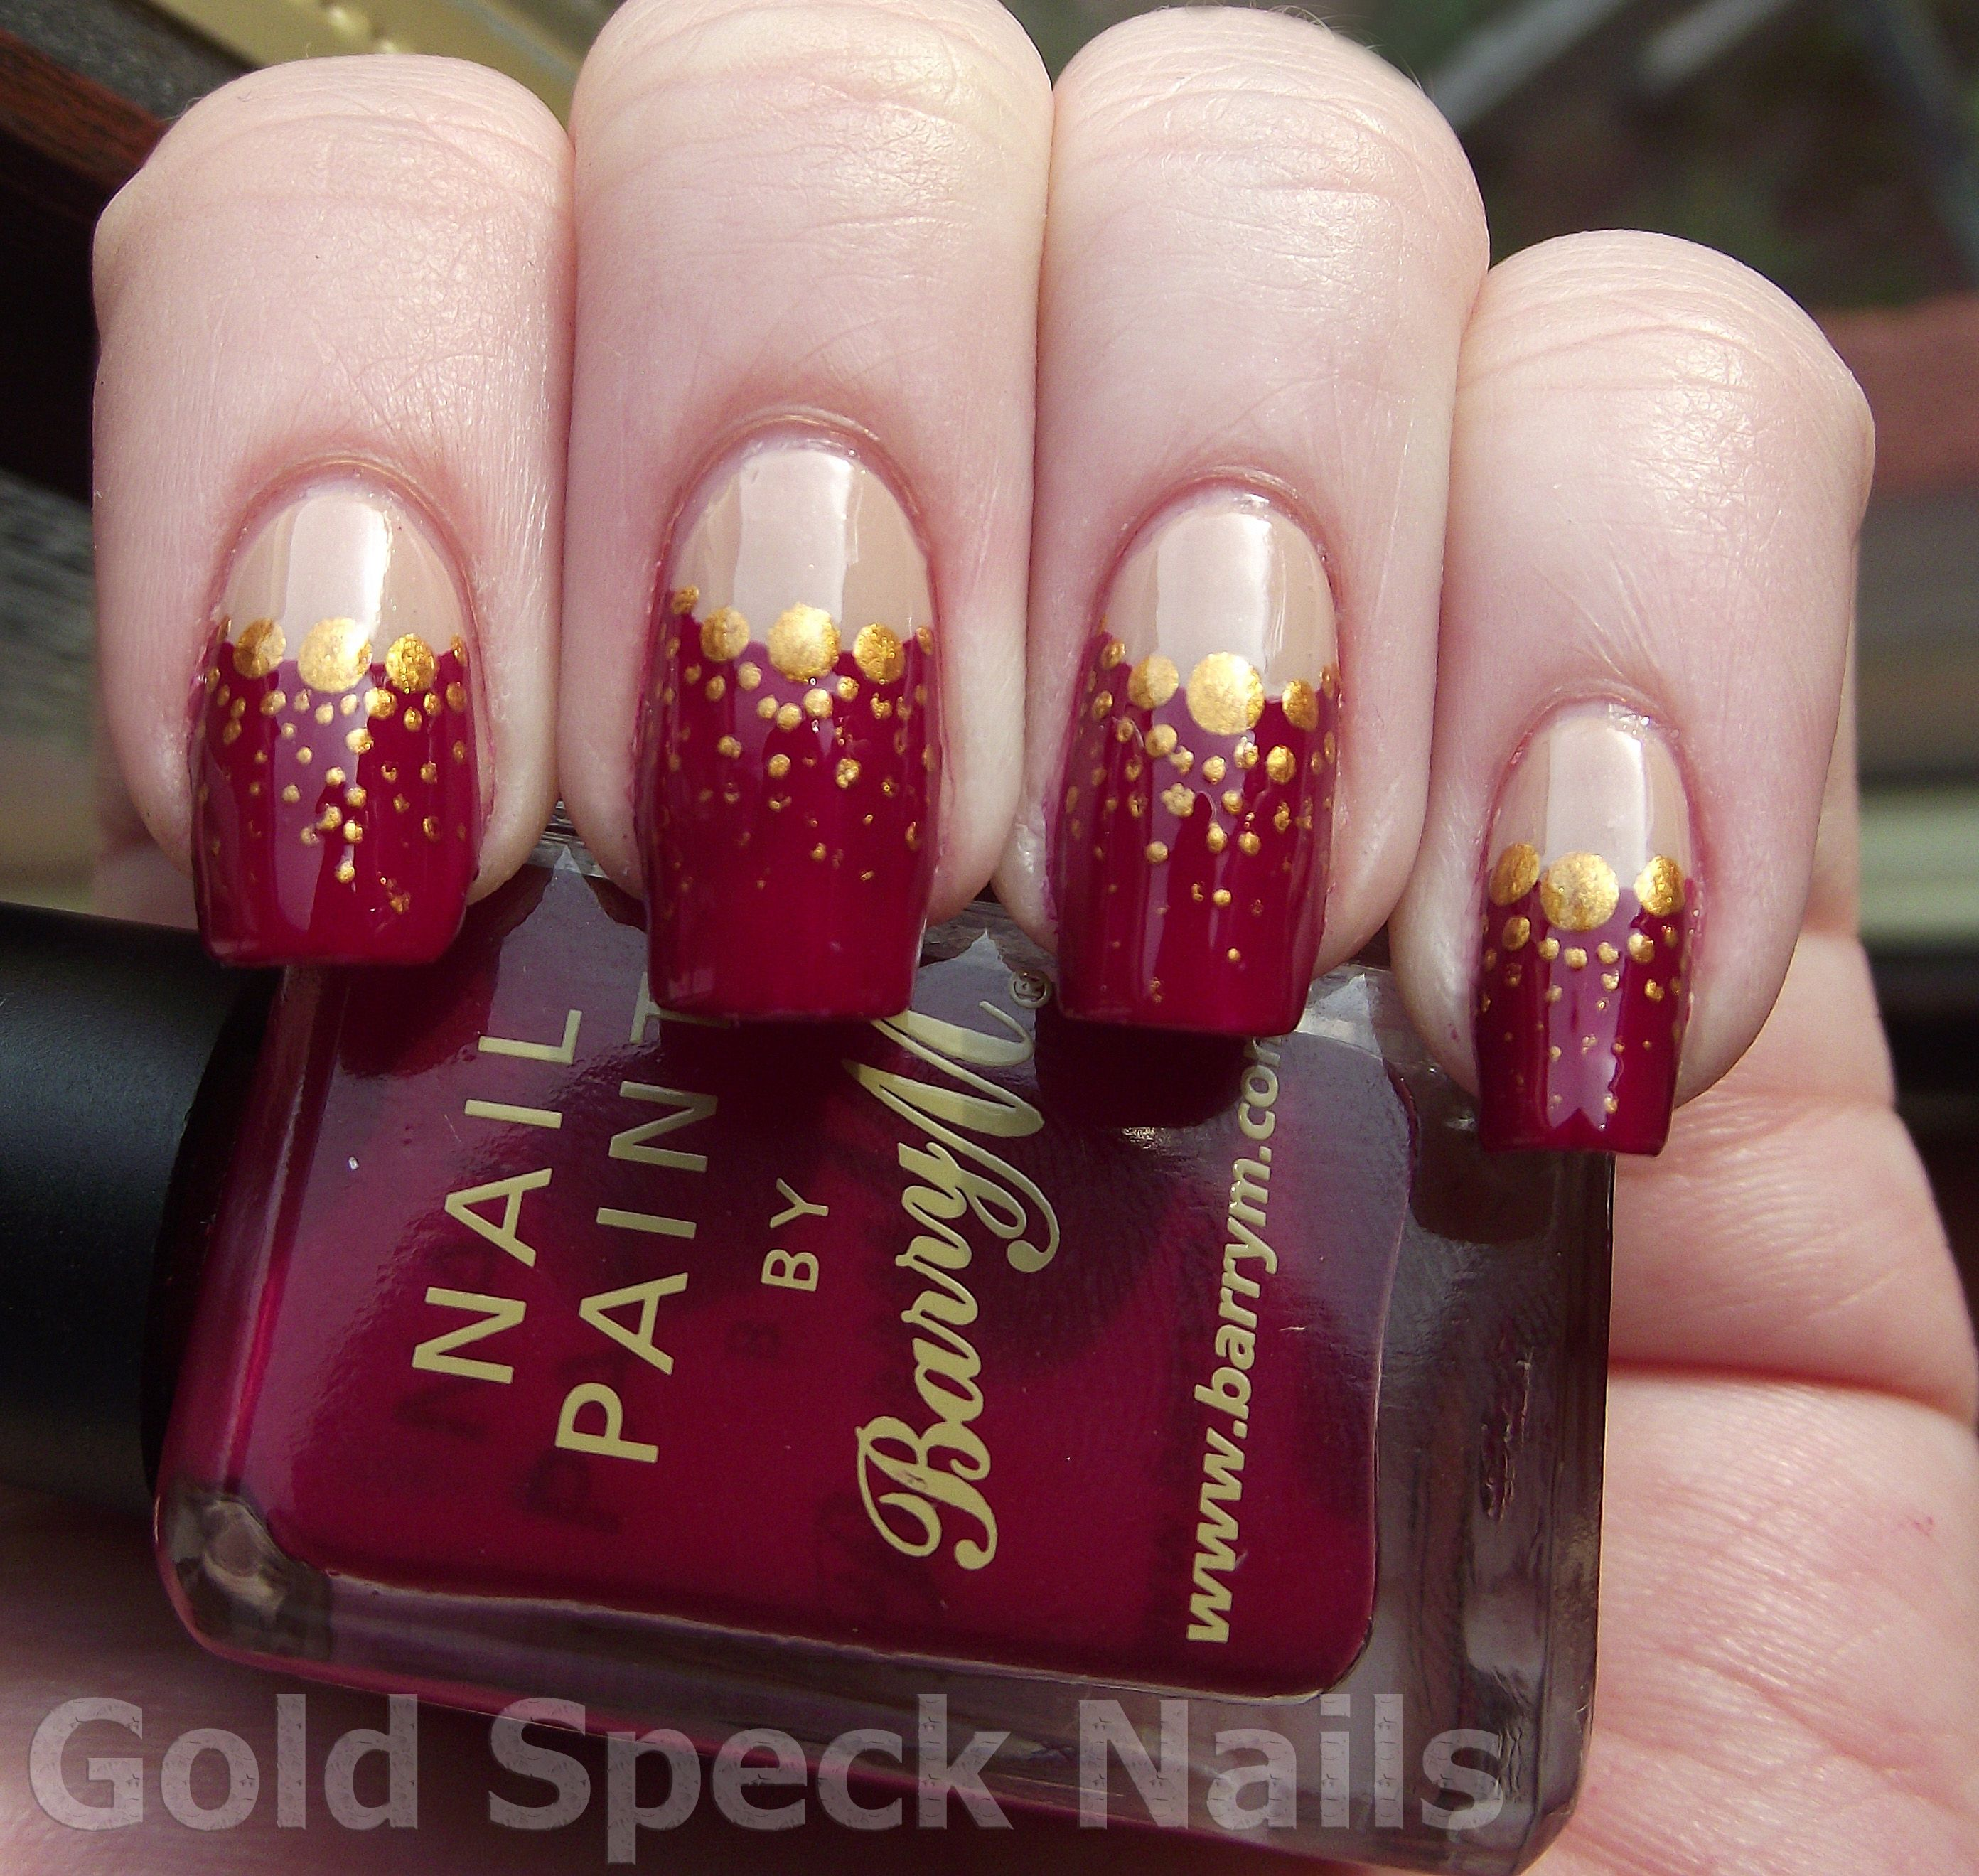 Base Coat Cnd Stickey Colours So Simple Barry M Raspberry Gold Citadel Shining Warhammer Paint Top China Glaze